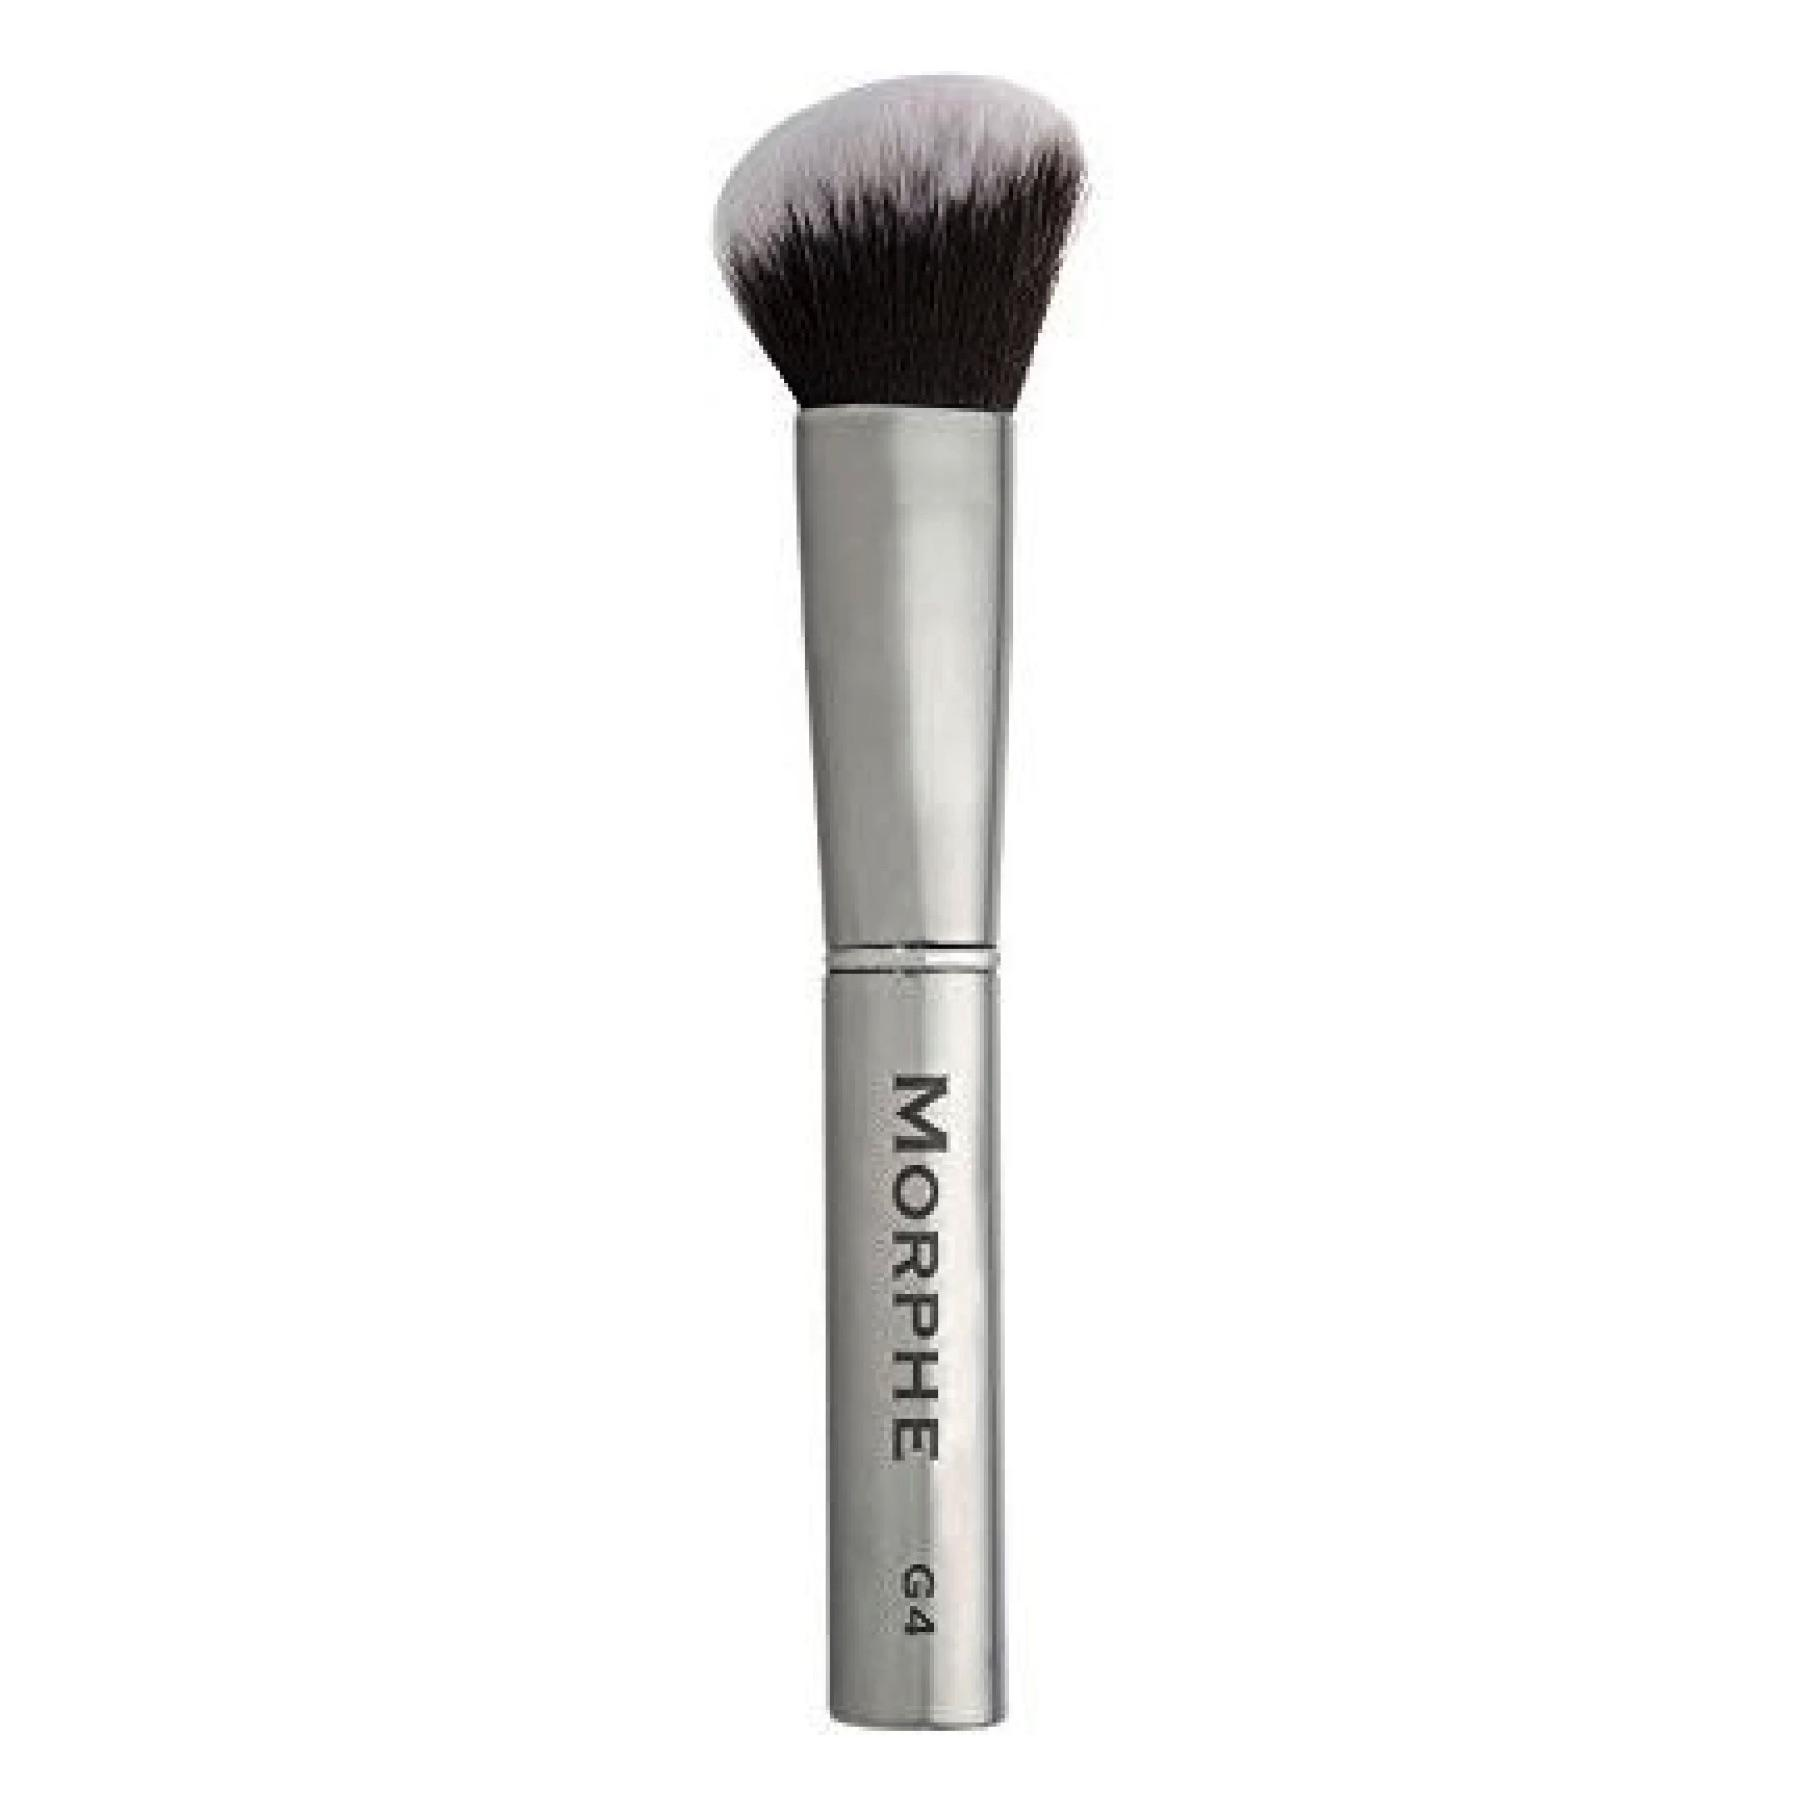 Morphe Angle Blush Brush G4 Gunmetal Collection